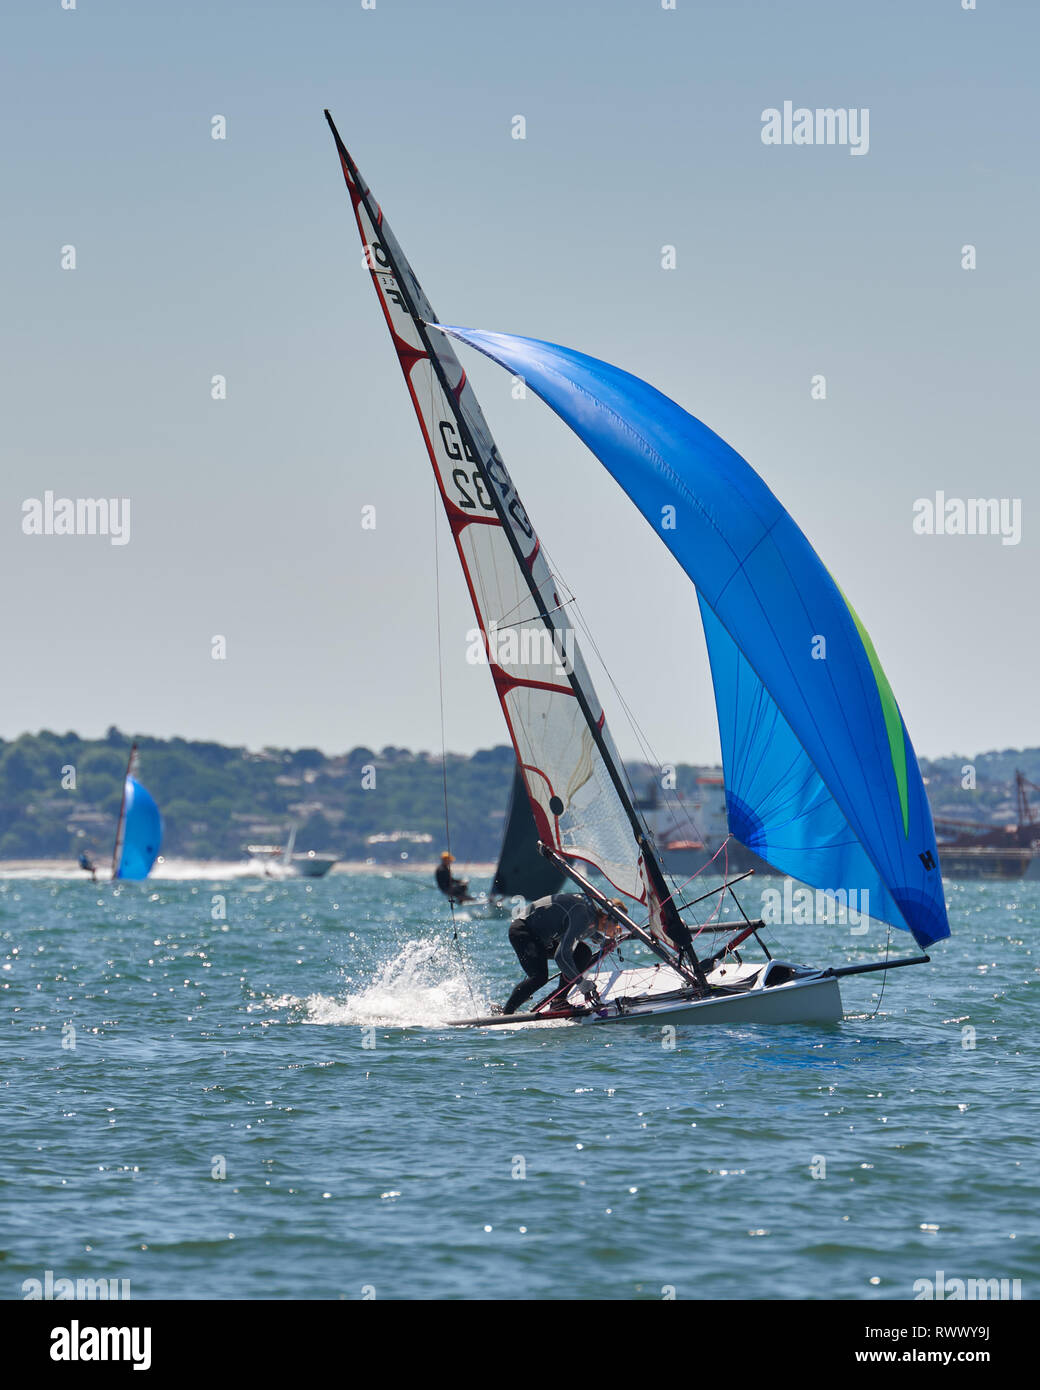 Performance. Musto Skiff racing making a jibe. An exhilaration sport. - Stock Image